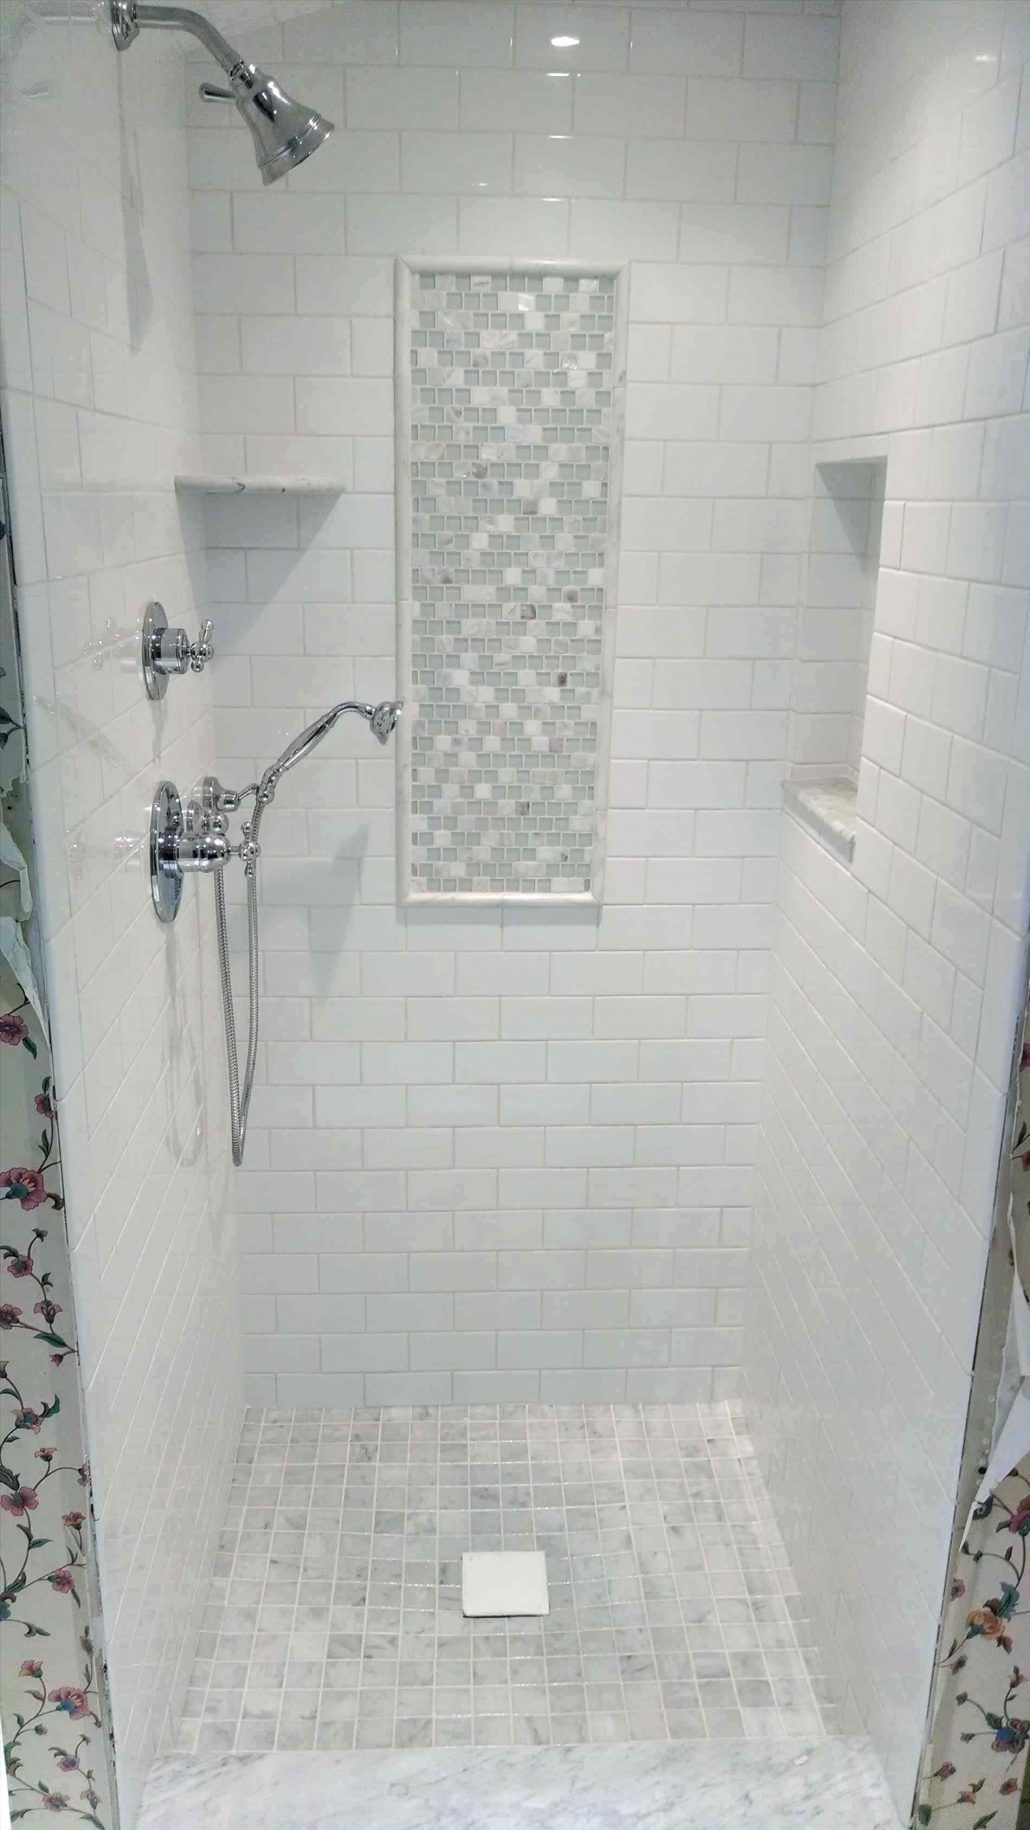 Tiles Subway Tile Bathroom Ideas Pinterest Subway Tile Bathroom Shower In White Subway Tile In Small Bath Subway Tile Bathroom Shower Tile Bathroom Shower Tile